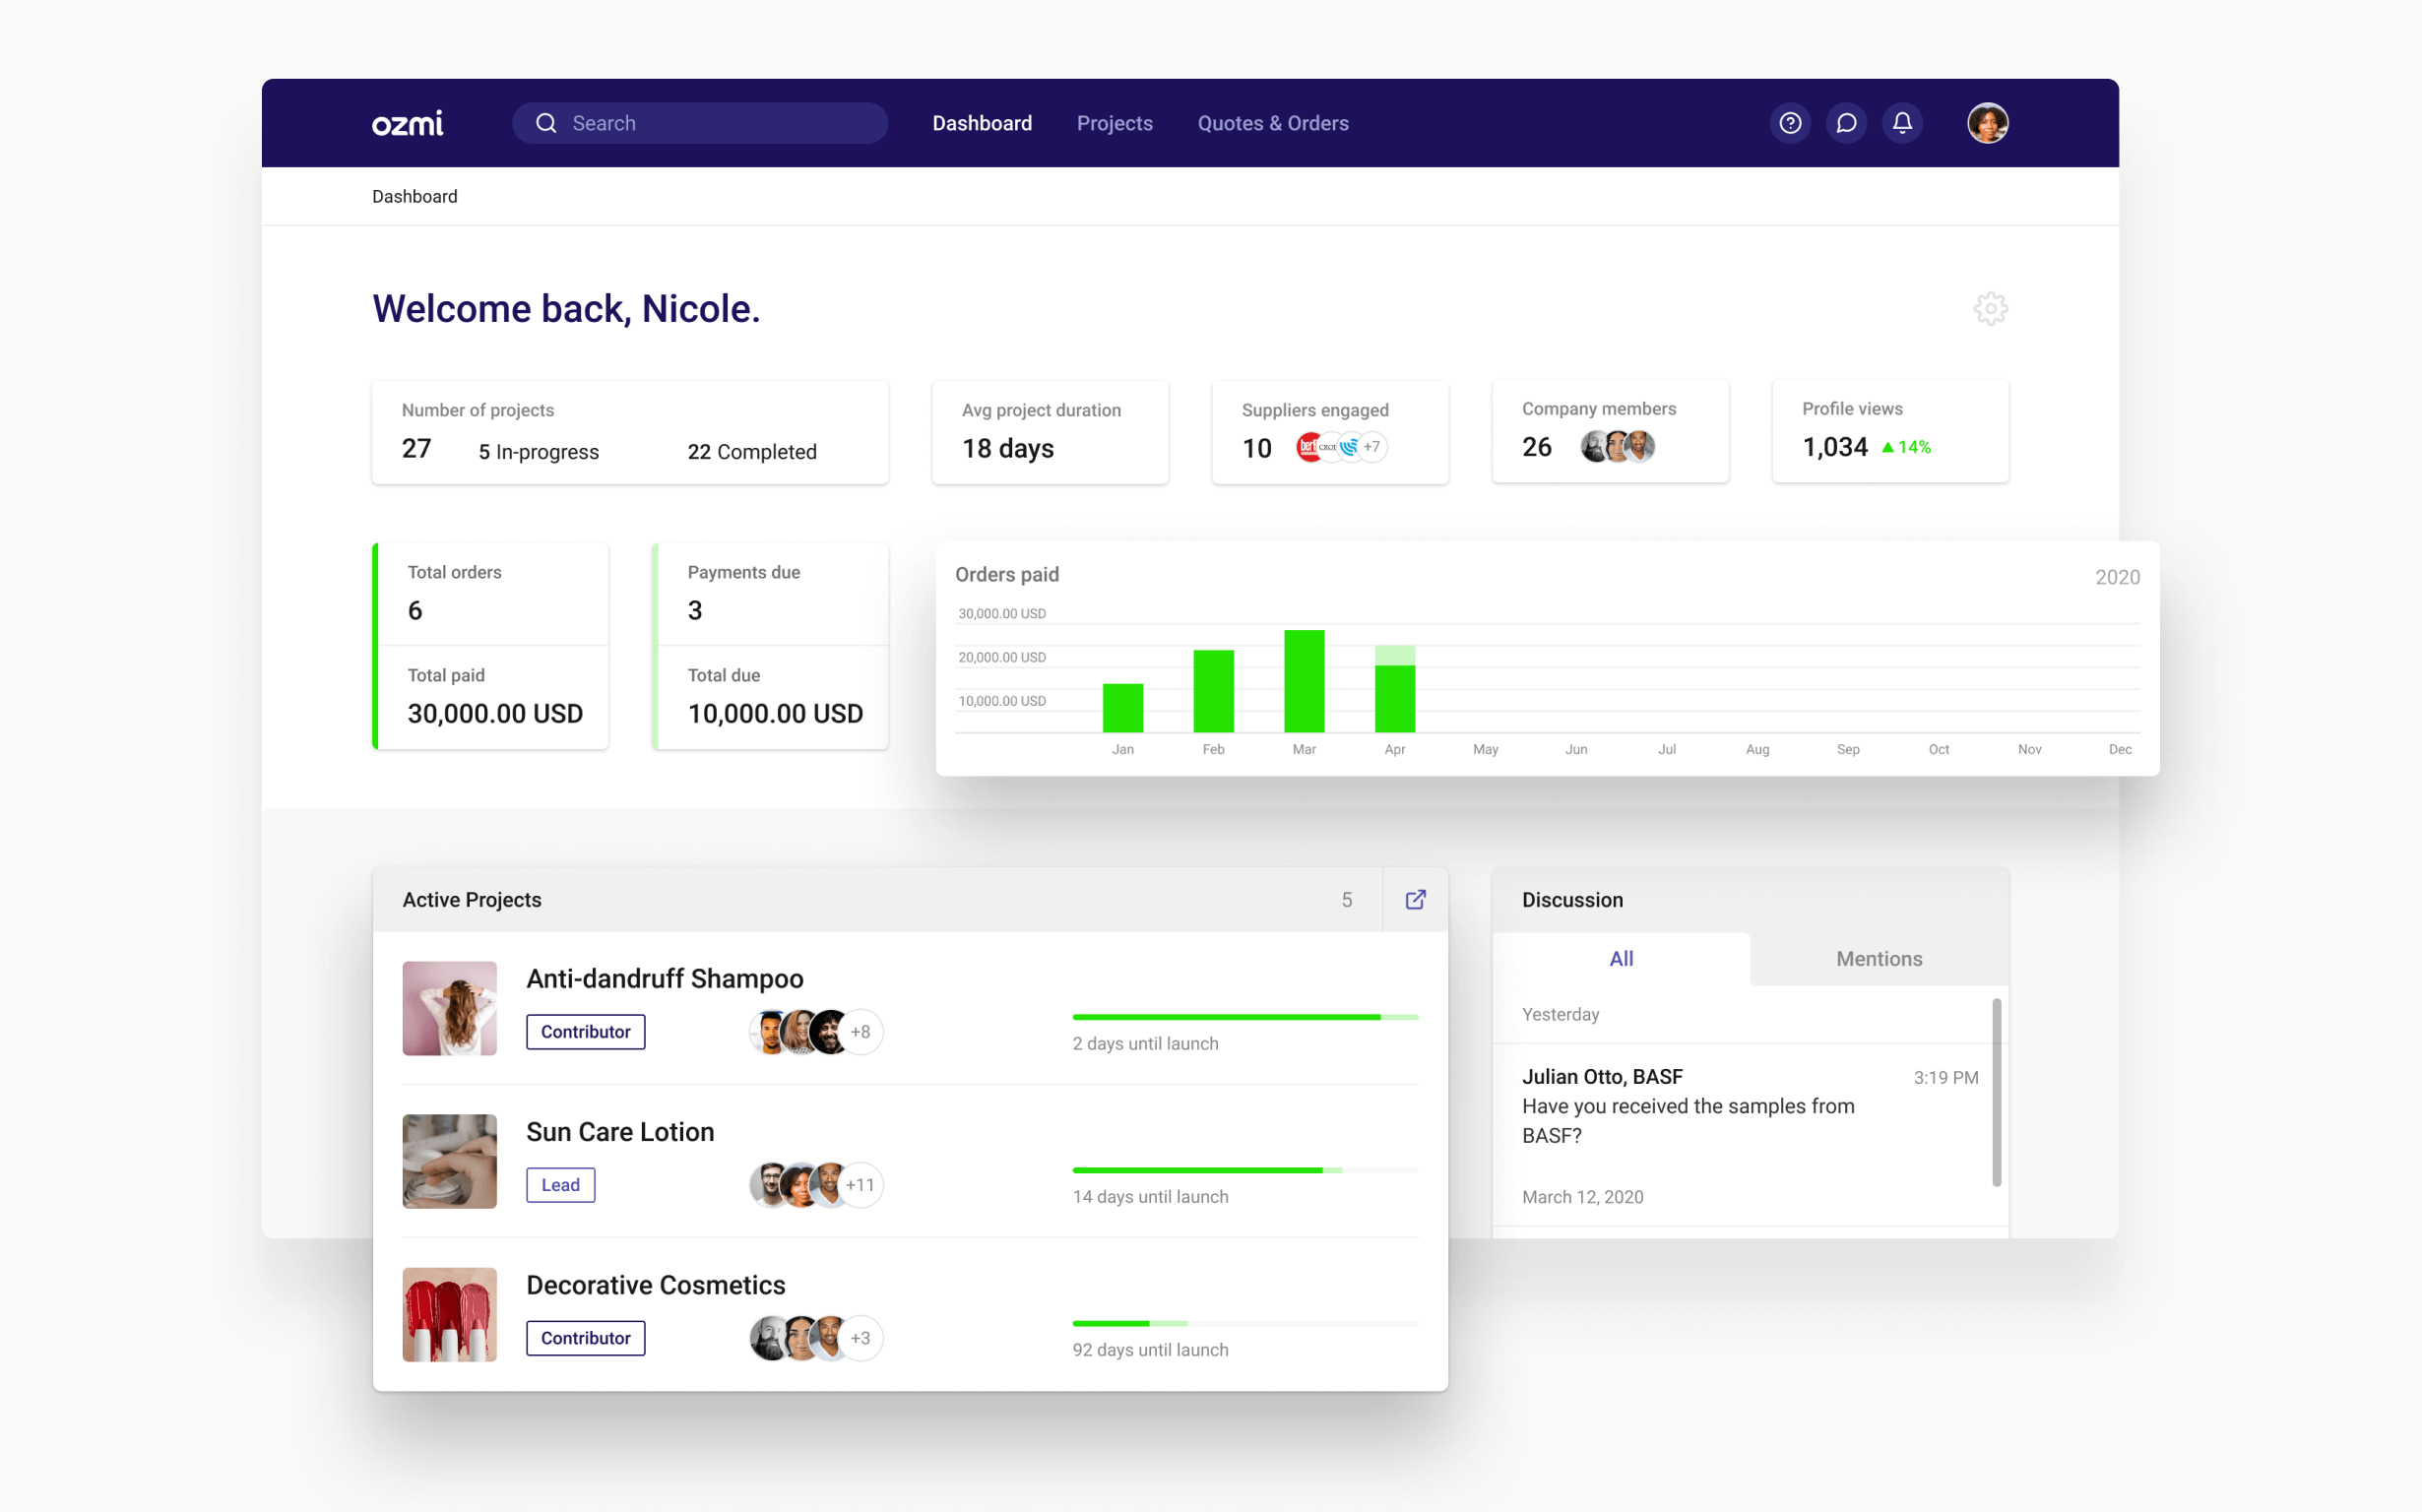 The dashboard for a buyer user on Ozmi featuring a chart of orders paid, a list of active projects, and other metrics.